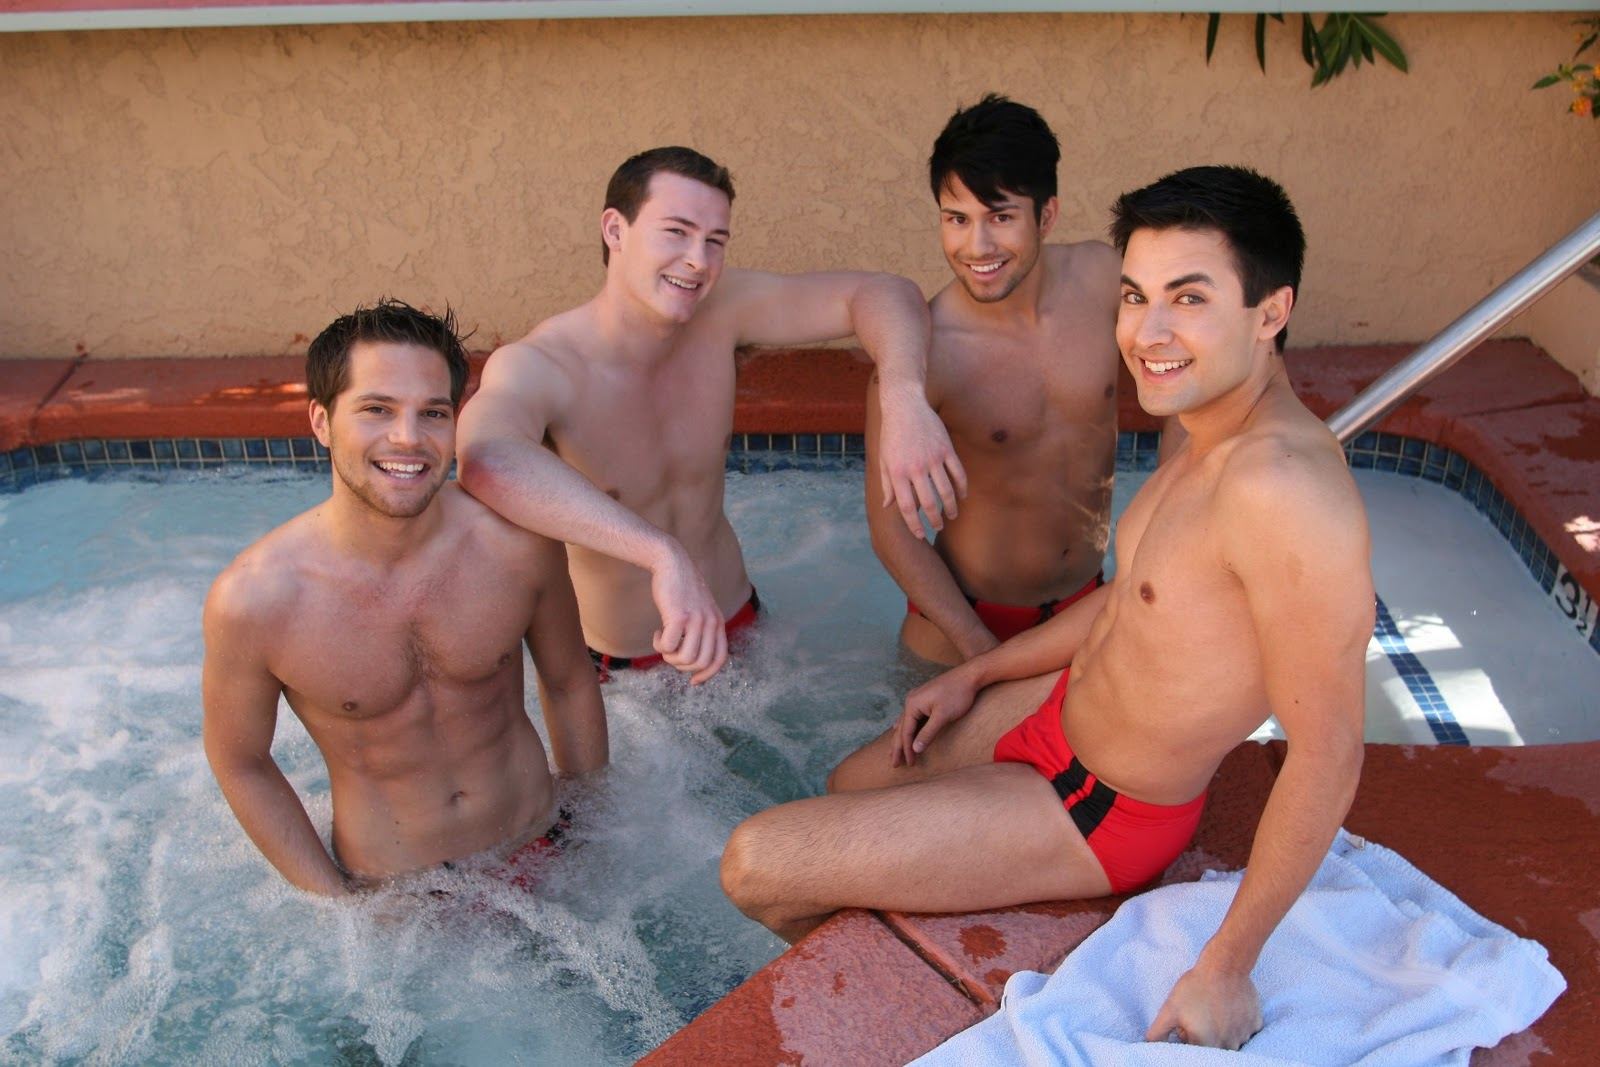 three springs gay personals Personal ads for three springs, pa are a great way to find a life partner, movie date, or a quick hookup personals are for people local to three springs, pa and are for ages 18+ of either sex.